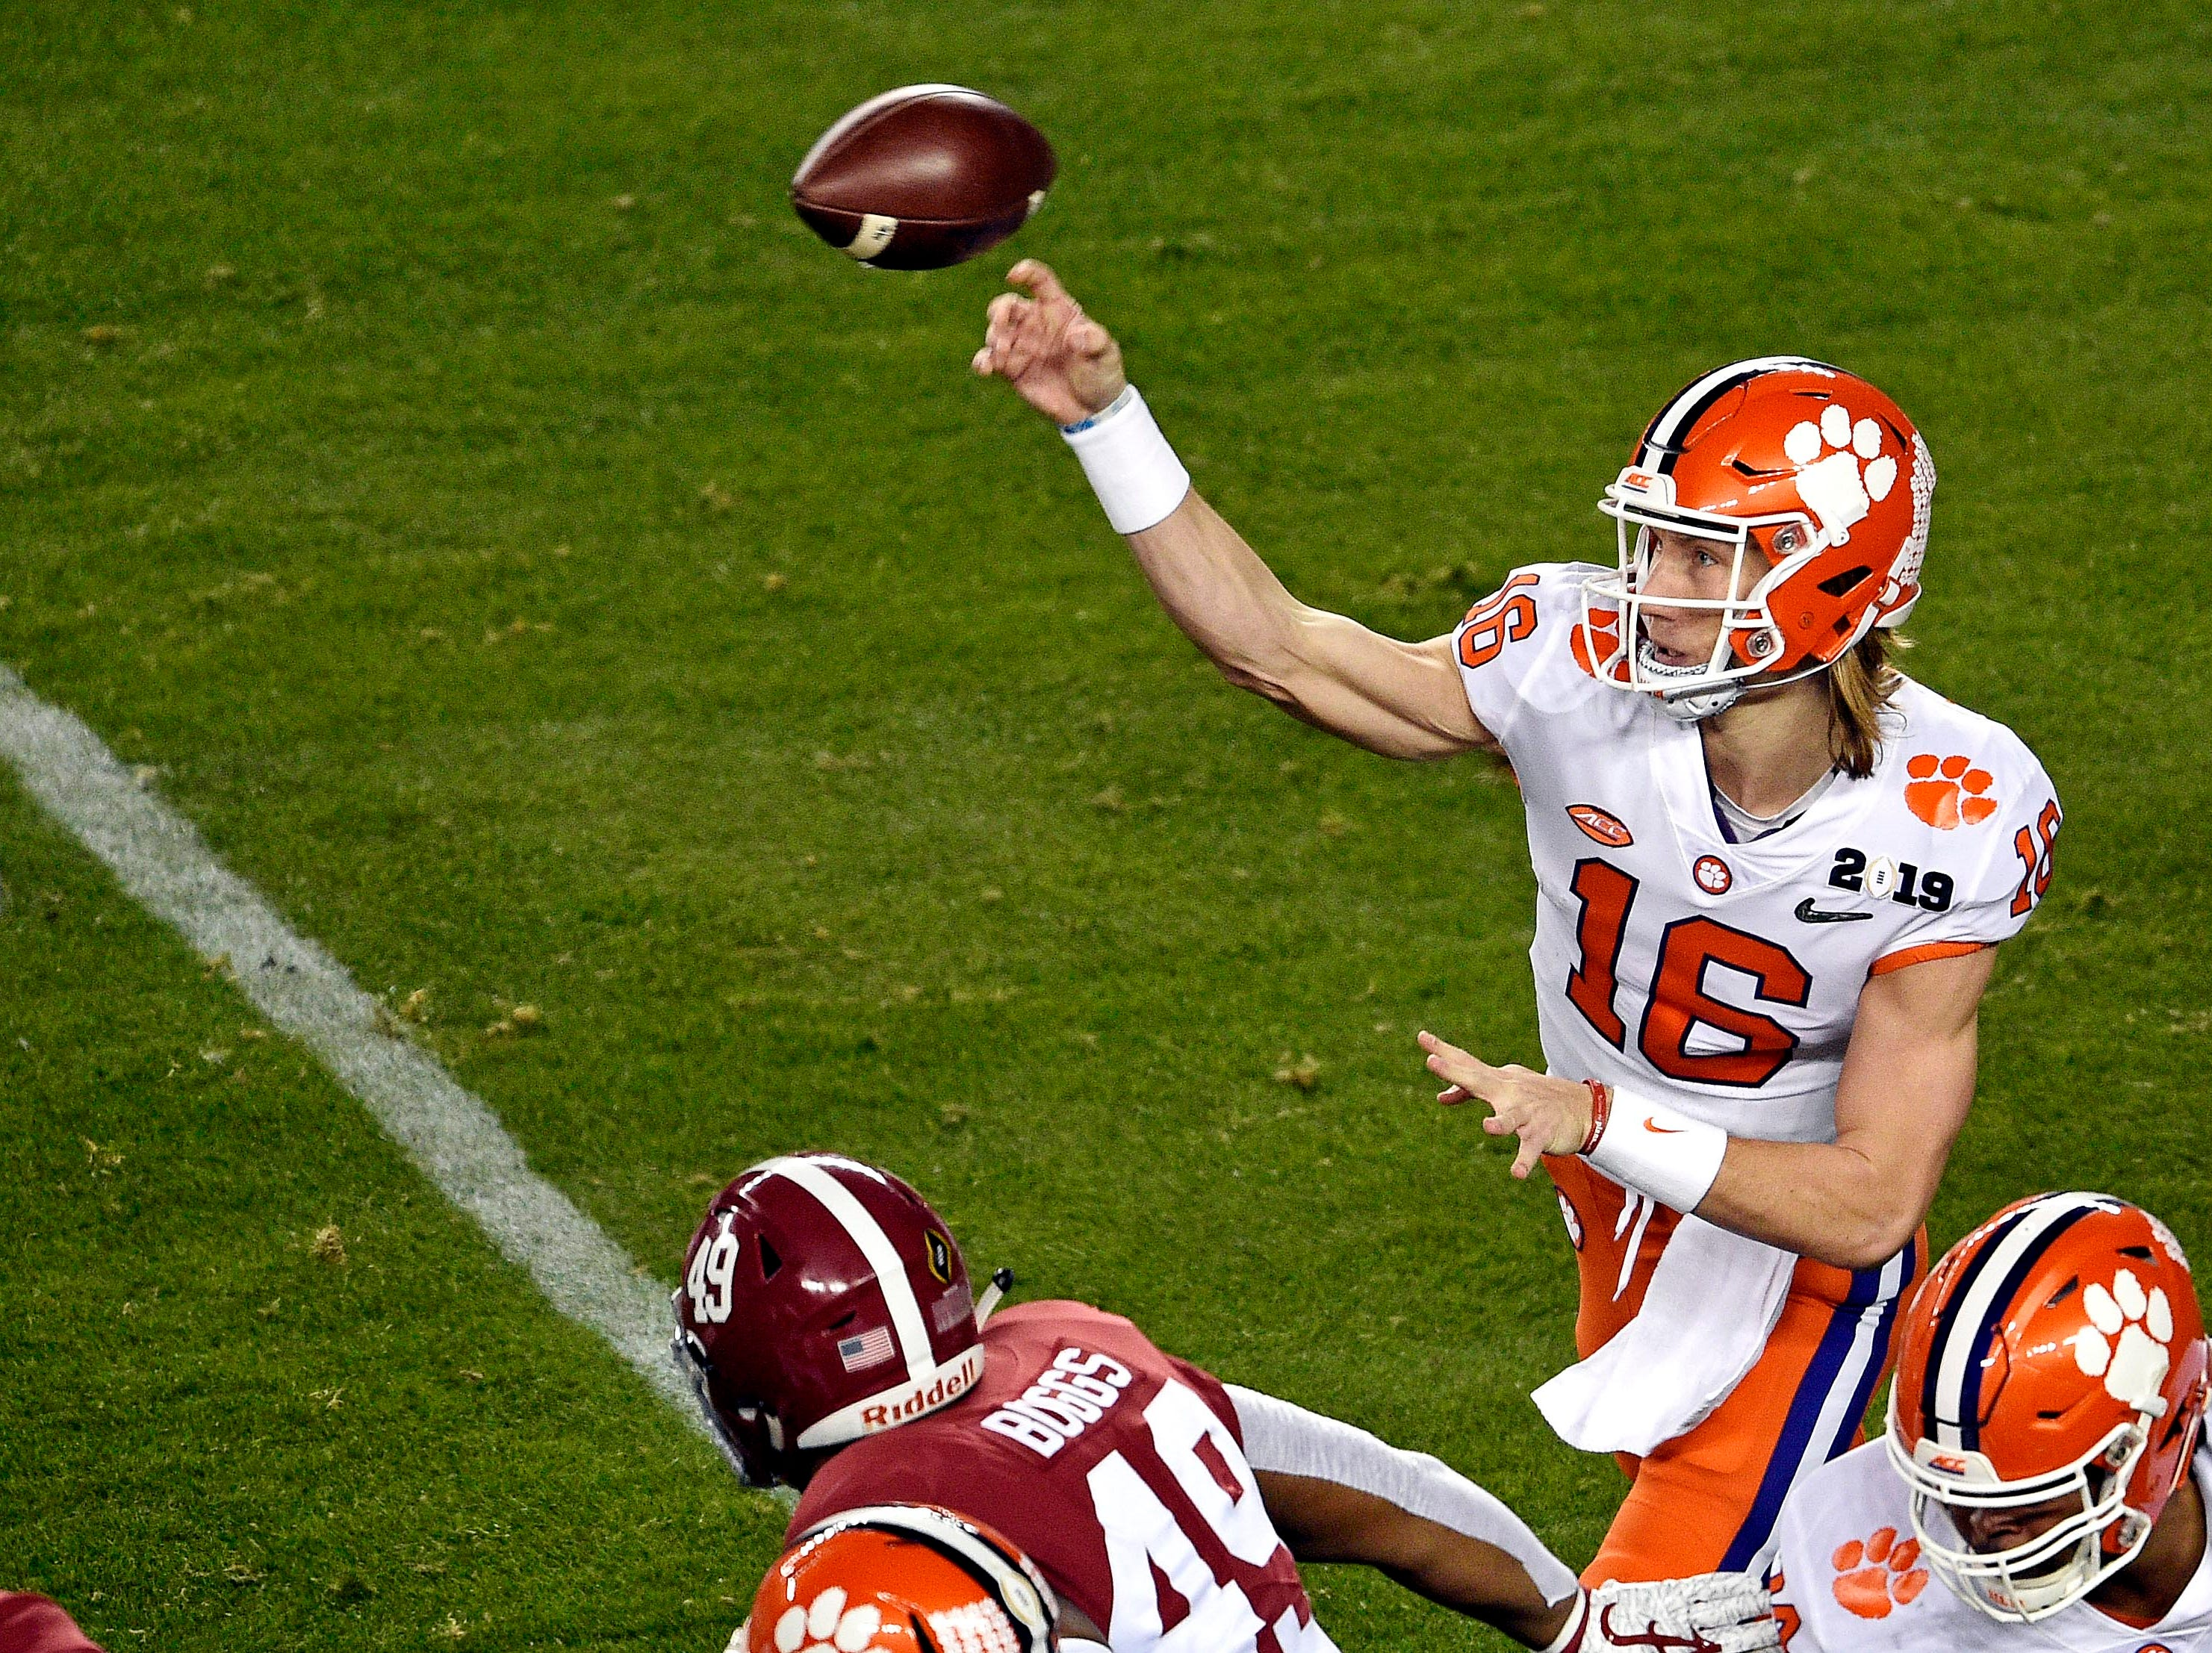 Jan 7, 2019; Santa Clara, CA, USA; Clemson Tigers quarterback Trevor Lawrence (16) throws a pass during the first quarter against the Alabama Crimson Tide during the 2019 College Football Playoff Championship game at Levi's Stadium. Mandatory Credit: Kelvin Kuo-USA TODAY Sports